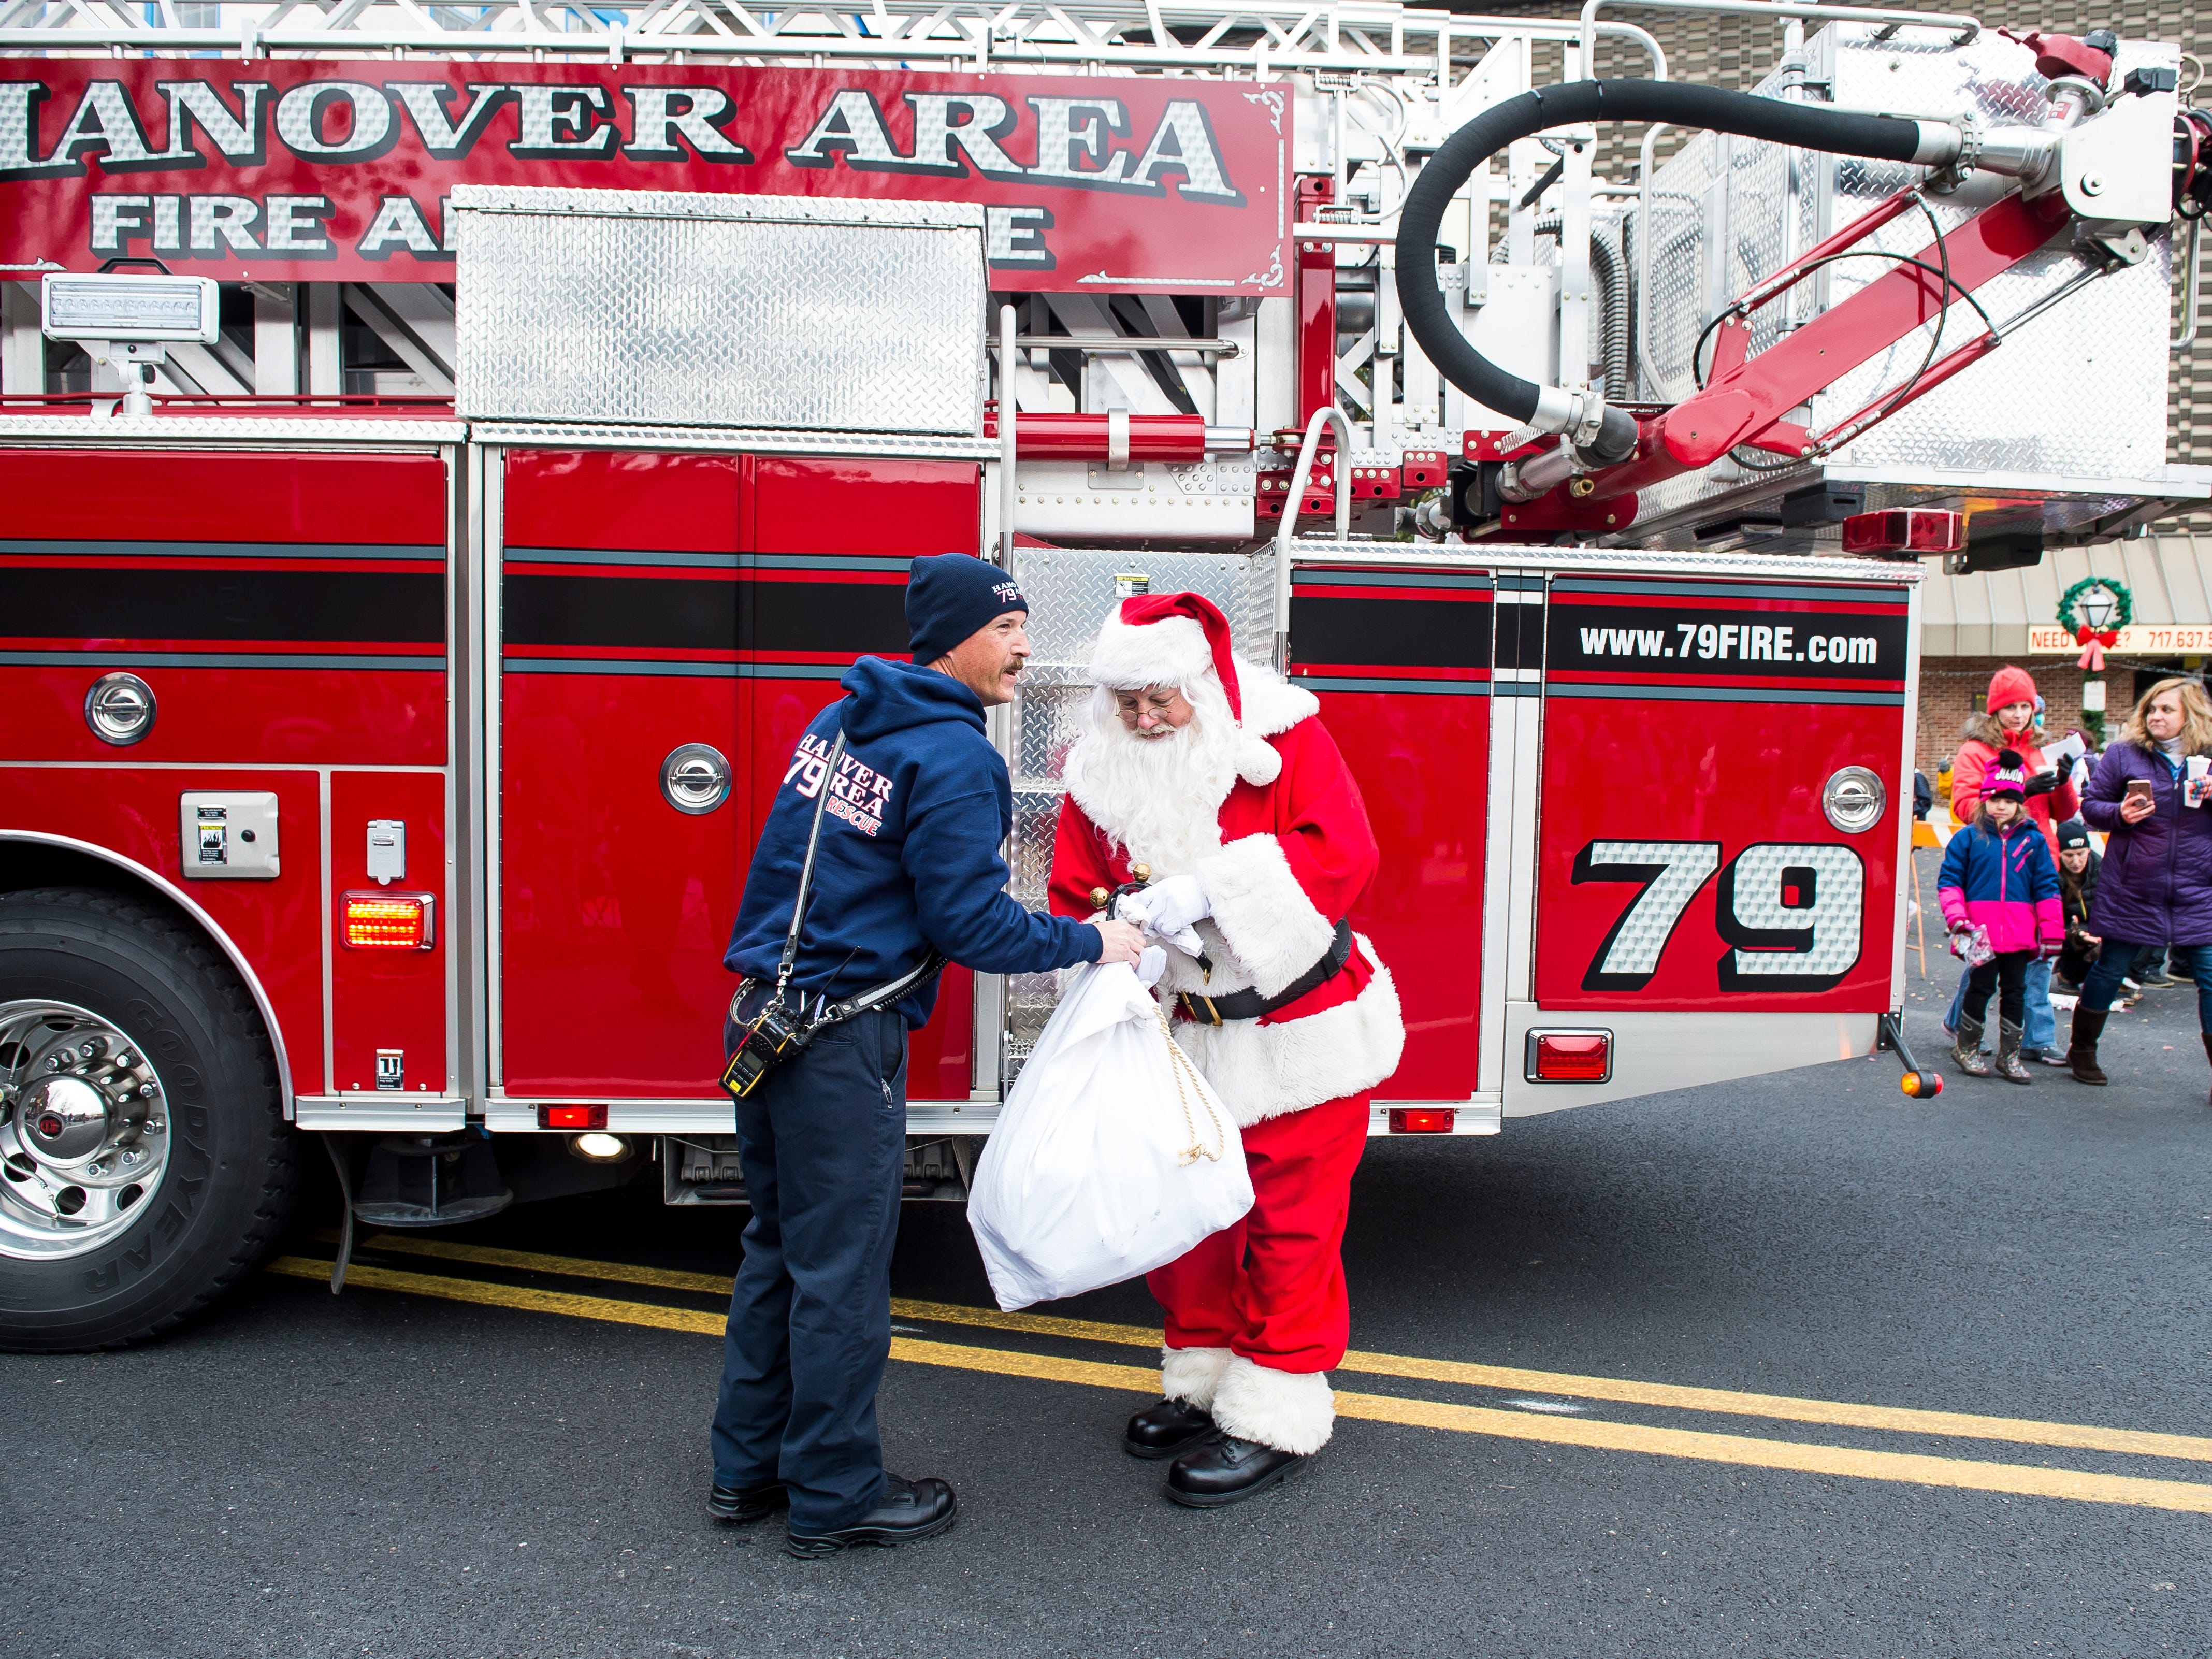 Santa gets some help with his bag from a member of Hanover Area Fire and Rescue during the annual Hanover Christmas parade on Friday, November, 23, 2018.